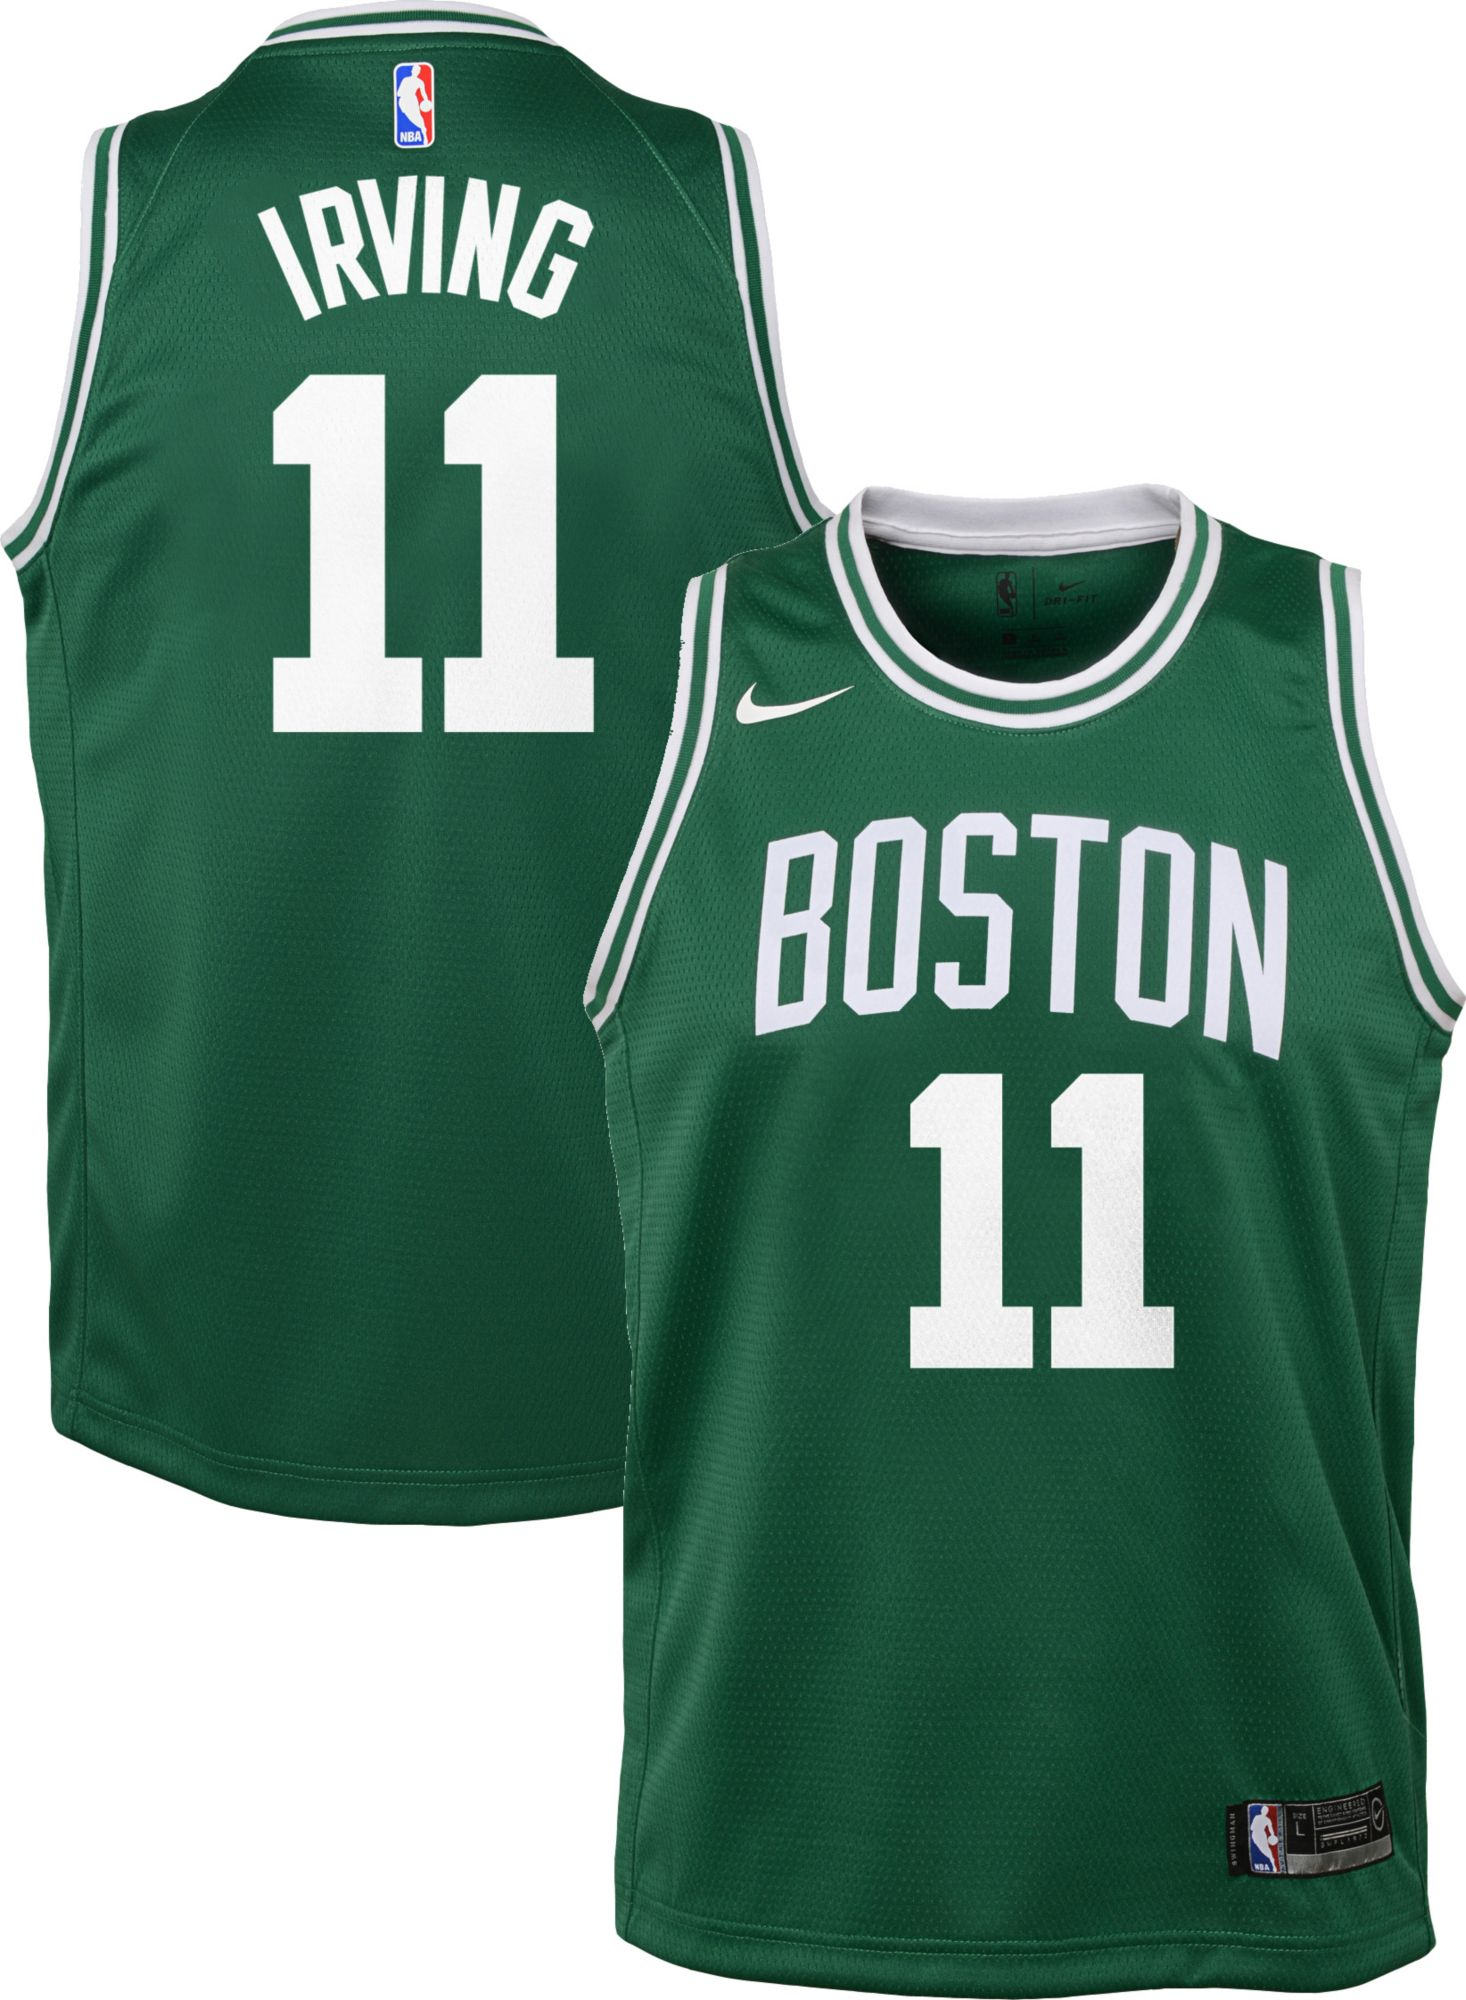 save off bd527 7c828 jersey celtics